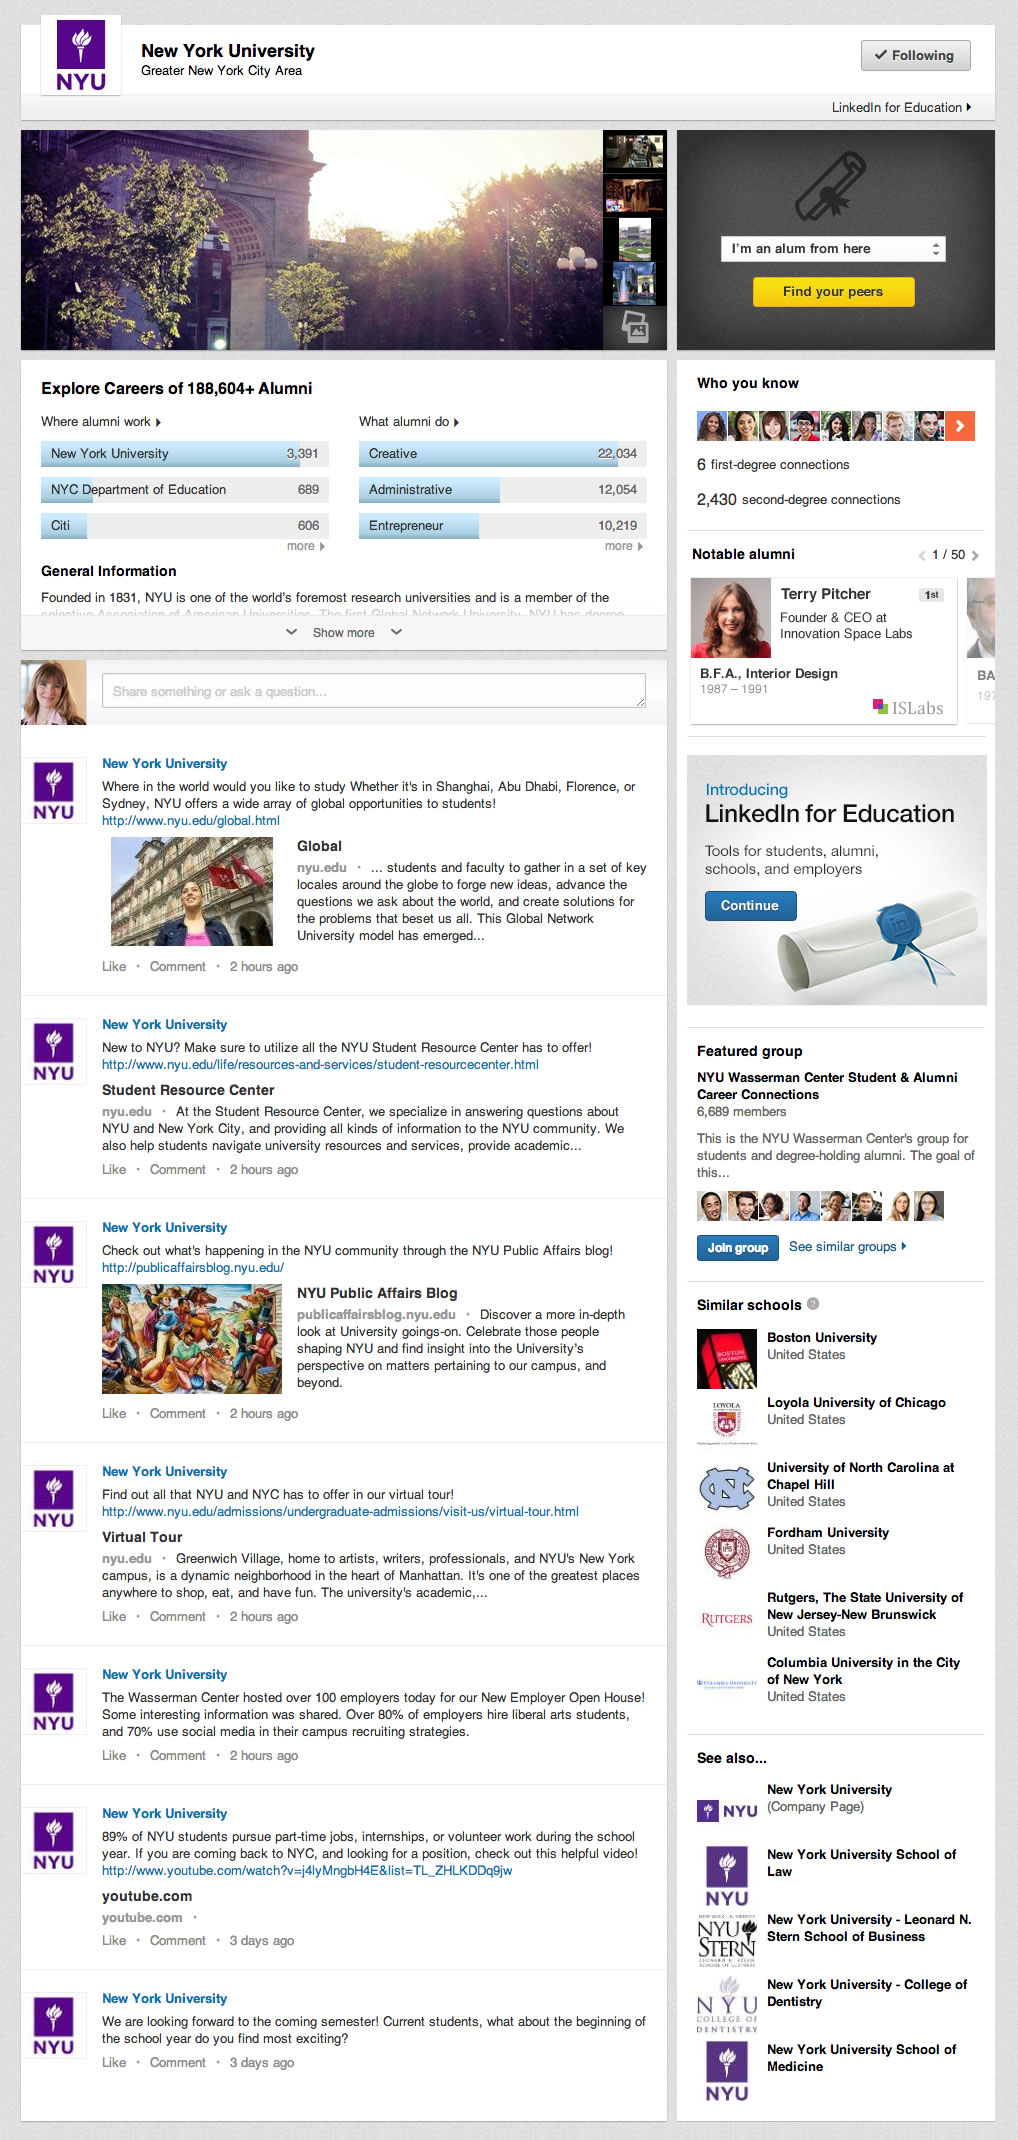 university-page-for-new-york-university